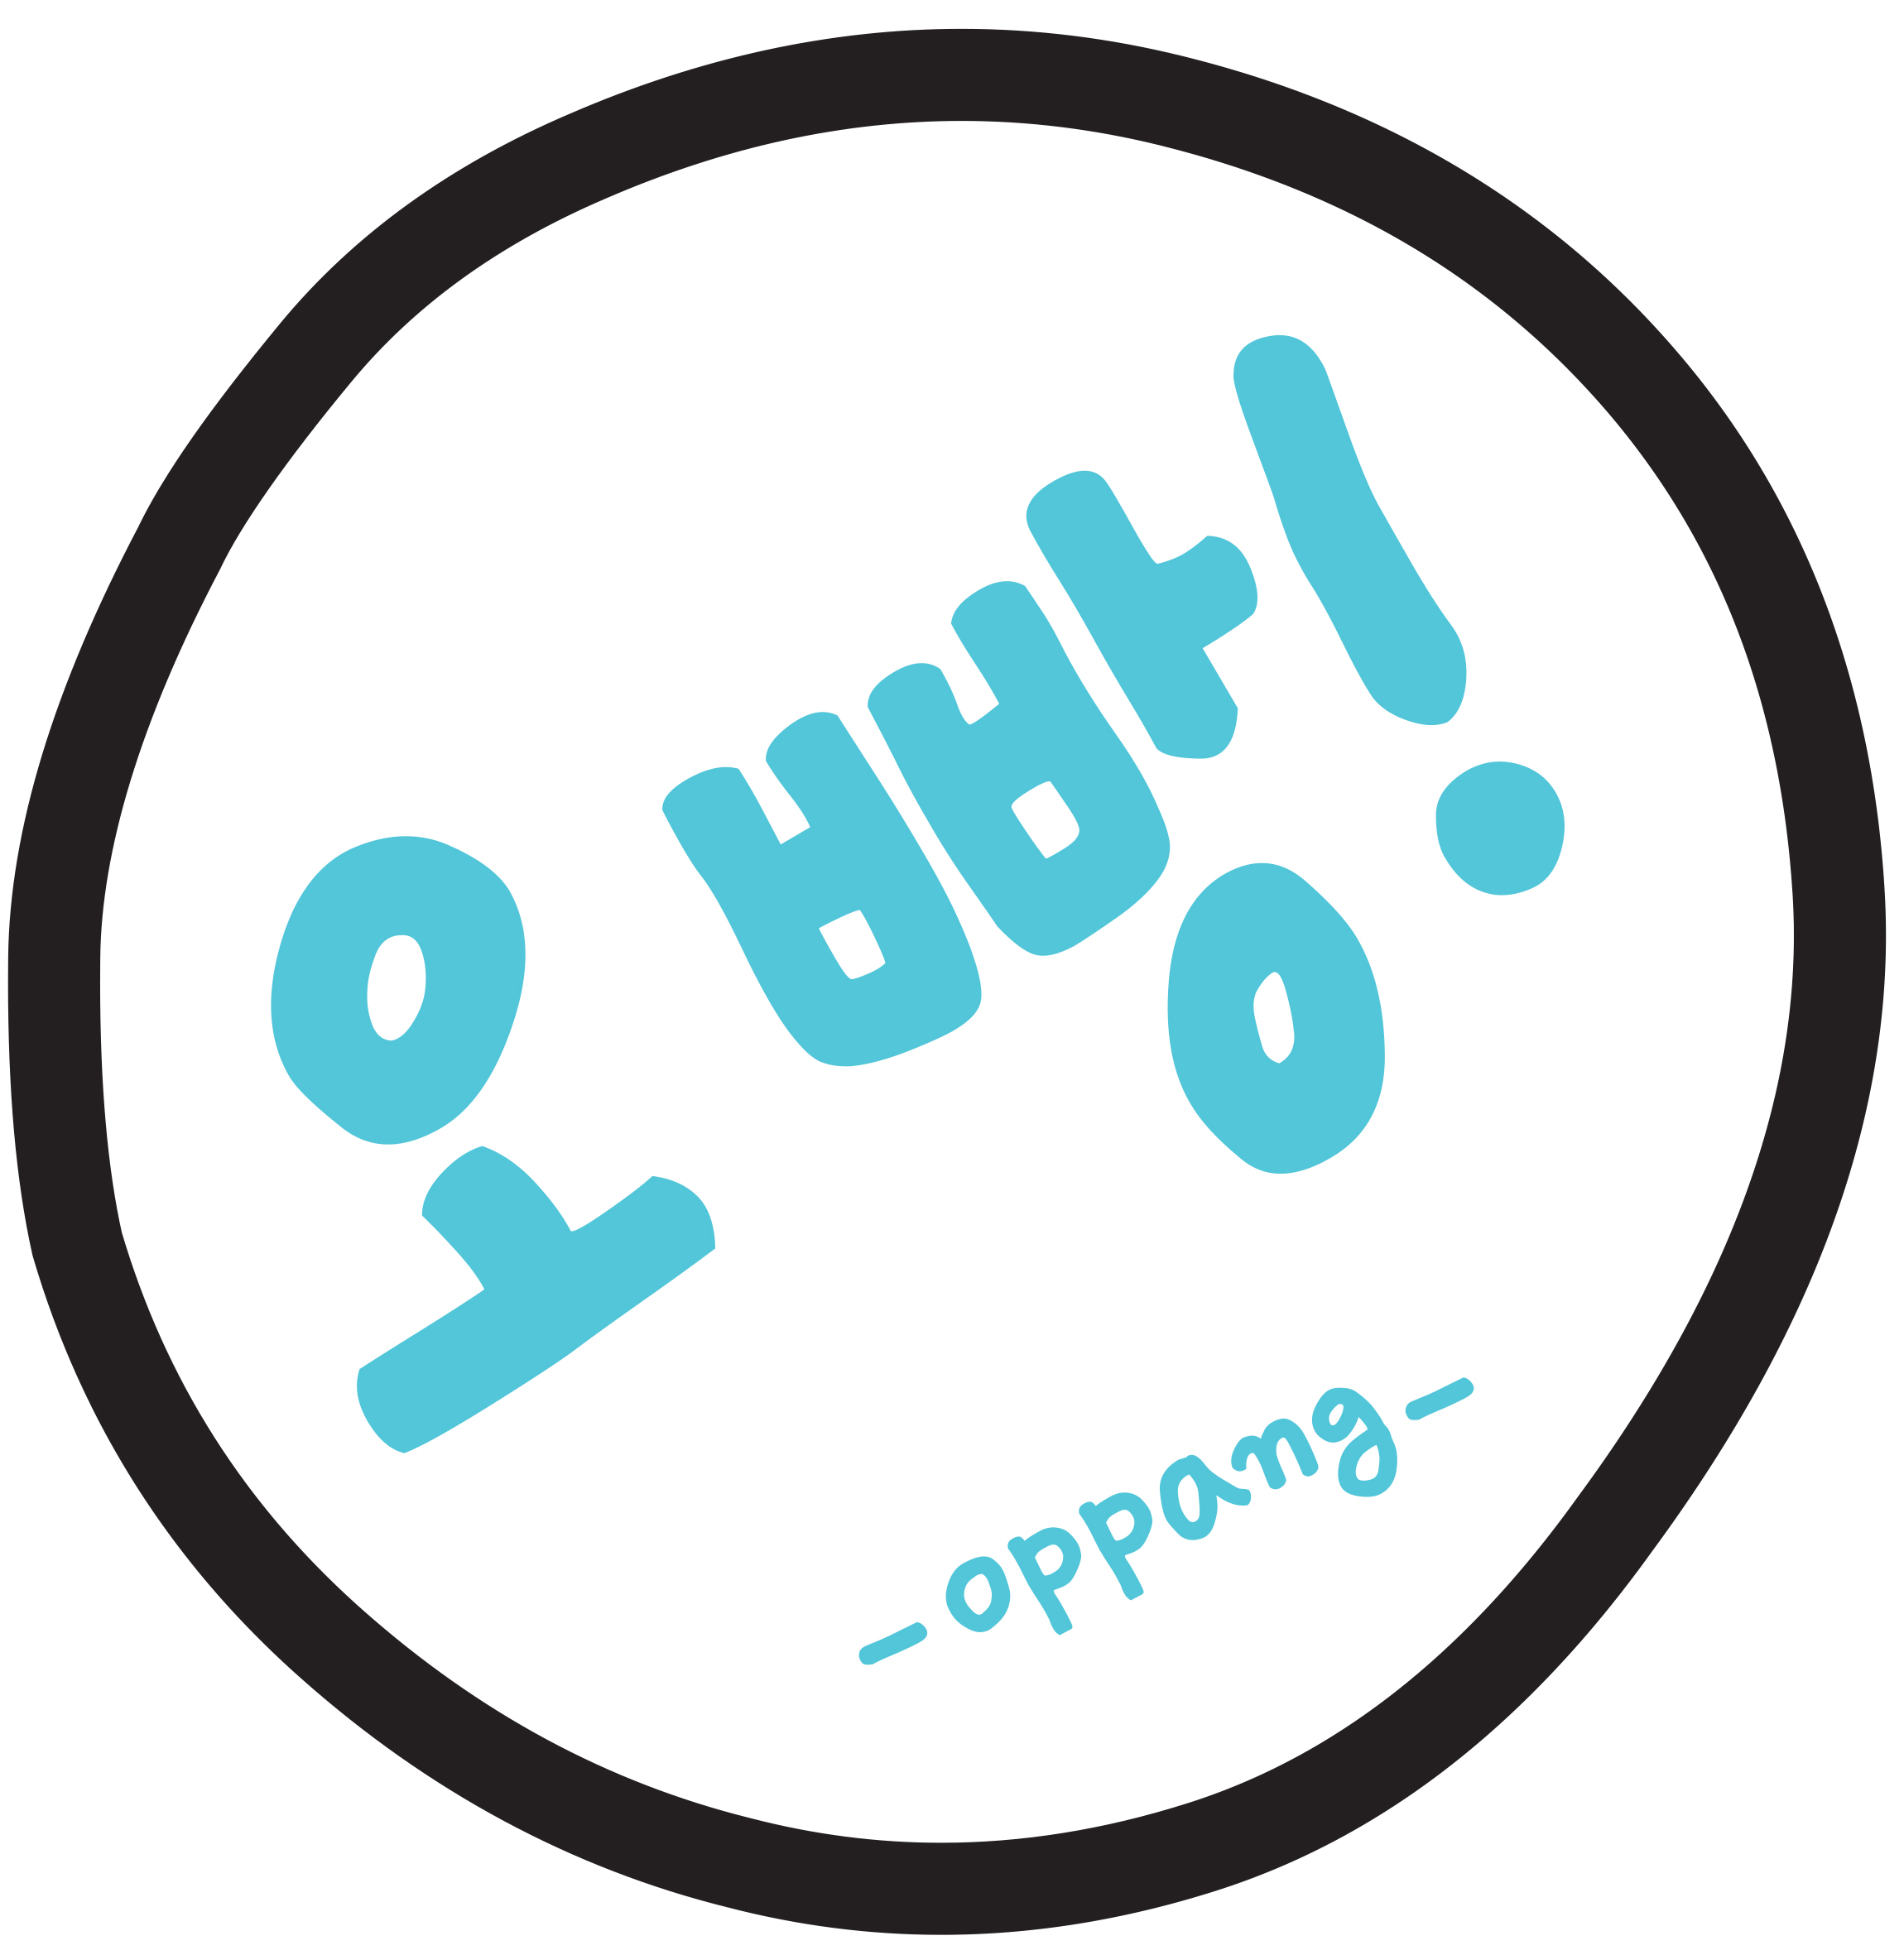 Oppang - Oppang will be selling K-pop Apparel and Accessoires, including modern hanbok clothing.